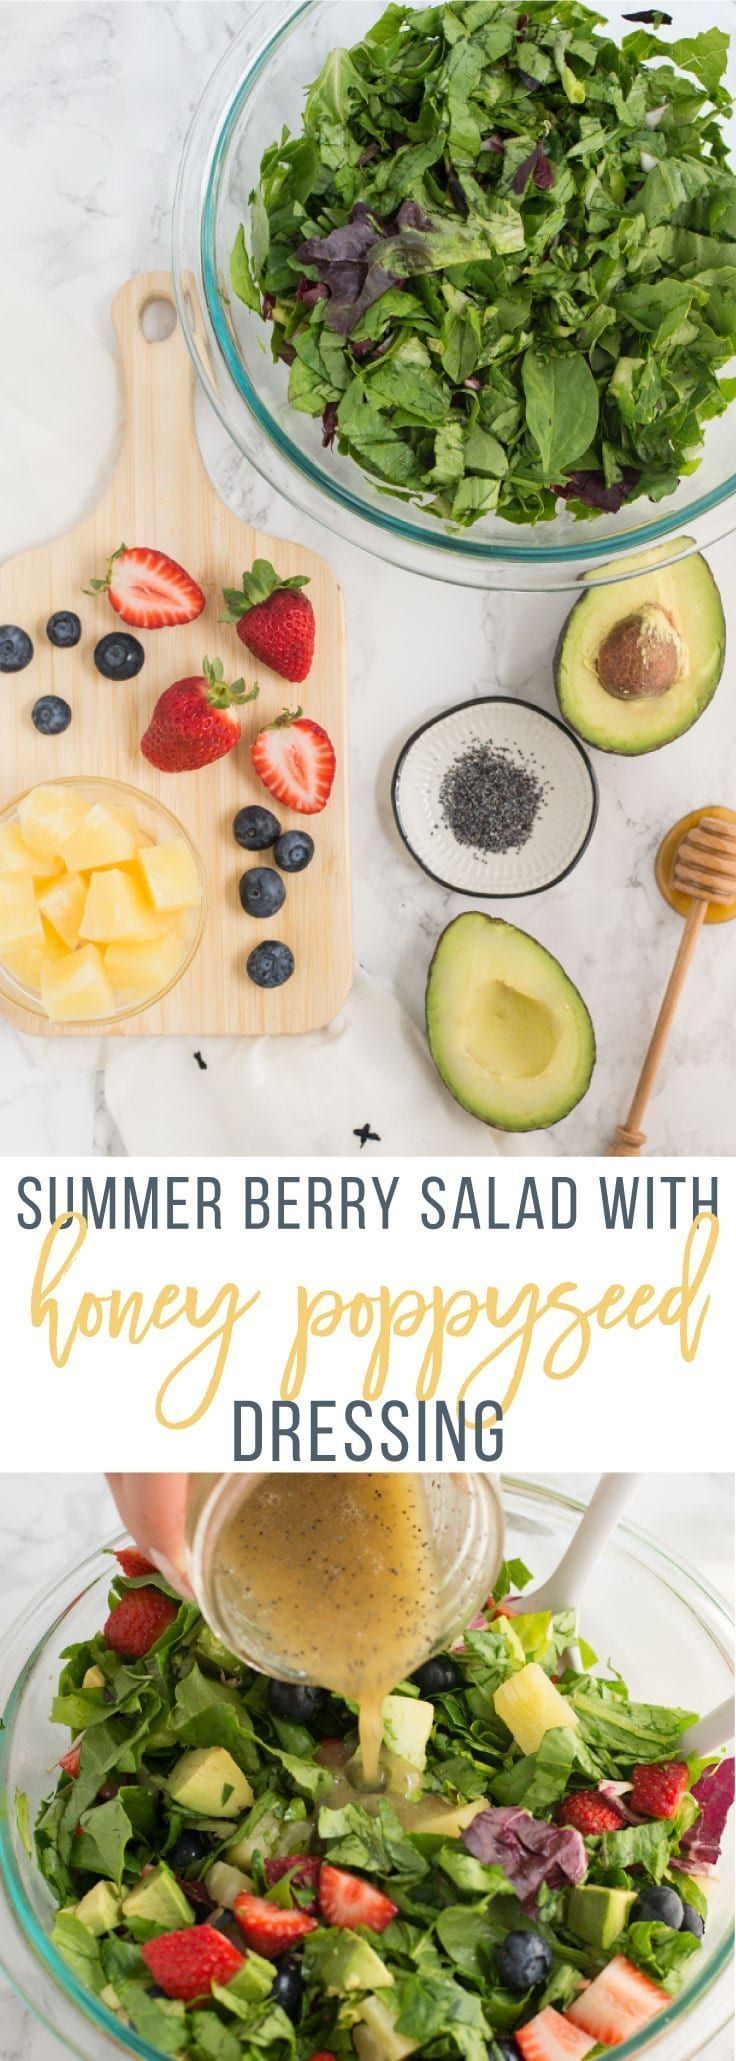 Summer Berry Salad with Honey Poppyseed Dressing -- This fresh and healthy salad is the perfect meal or side dish. Berries, pineapple, avocado all tossed with a perfectly sweet honey poppyseed dressing.      Summer Berry Salad with Honey Poppyseed Dressing -- This fresh and healthy salad is the perfect meal or side dish. Berries, pineapple, avocado all tossed with a perfectly sweet honey poppyseed dressing. | mindfulavocado